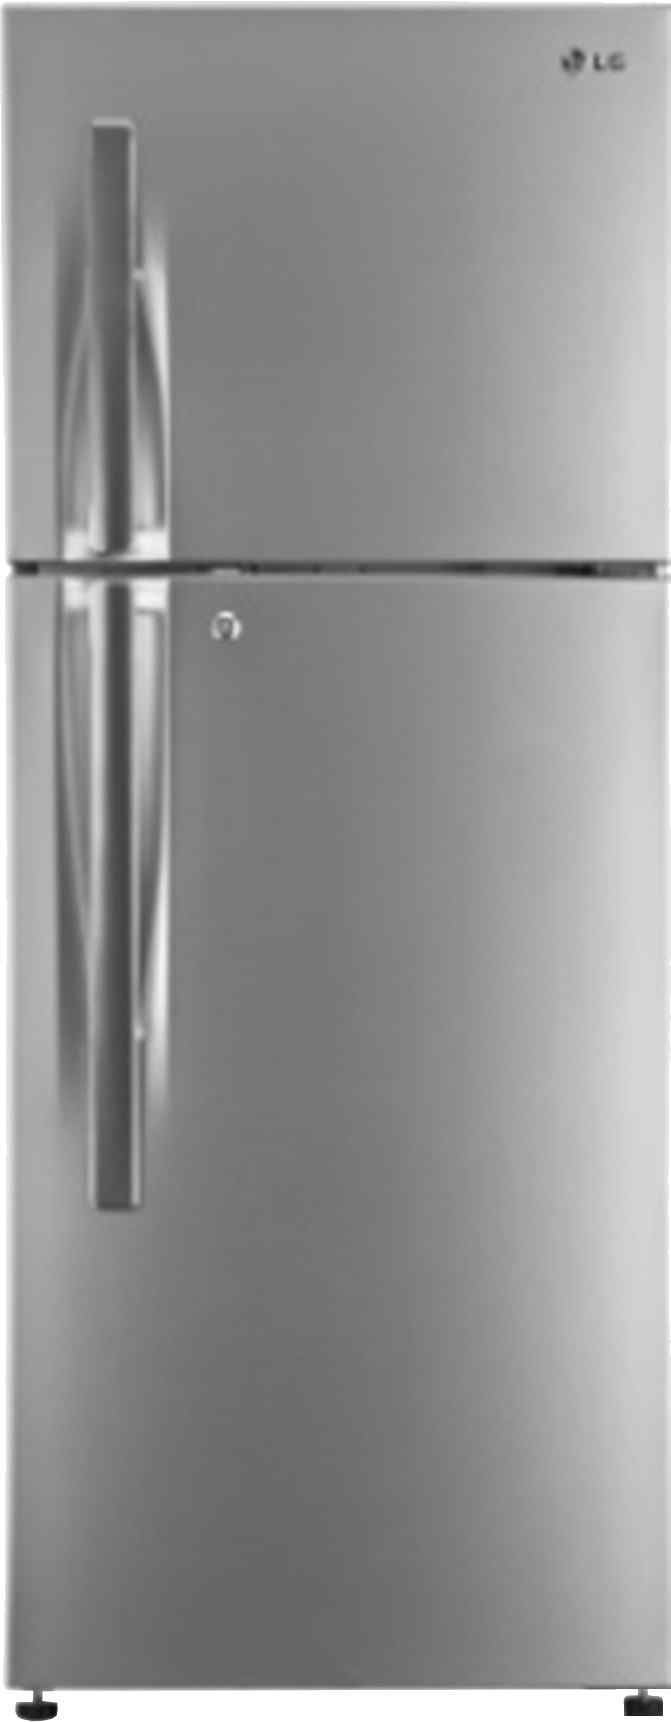 Best price on LG GL-T372HPZM 335L Frost Free Double Door Refrigerator in India